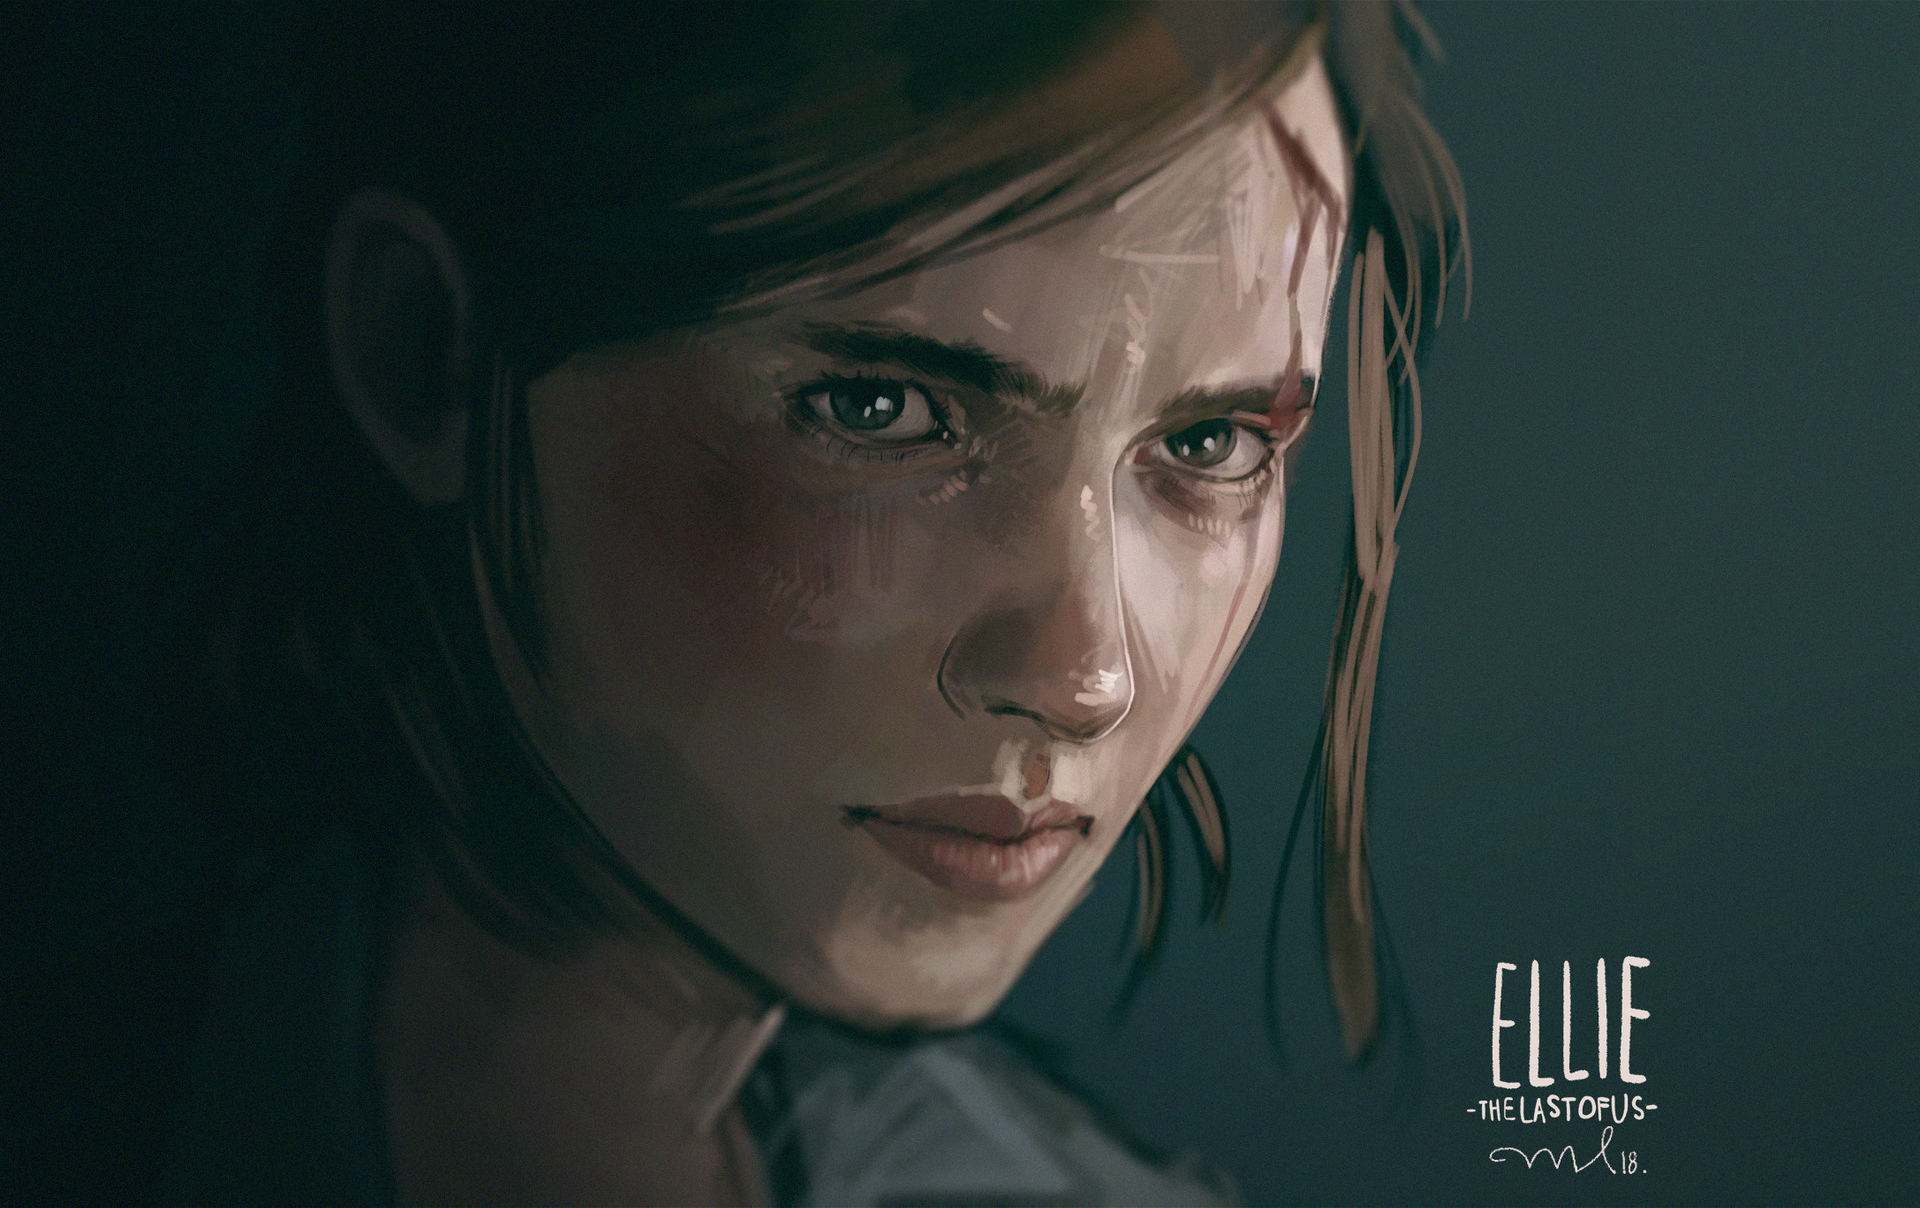 Wallpaper of Ellie, The Last of Us Part II, Video Game background & HD image